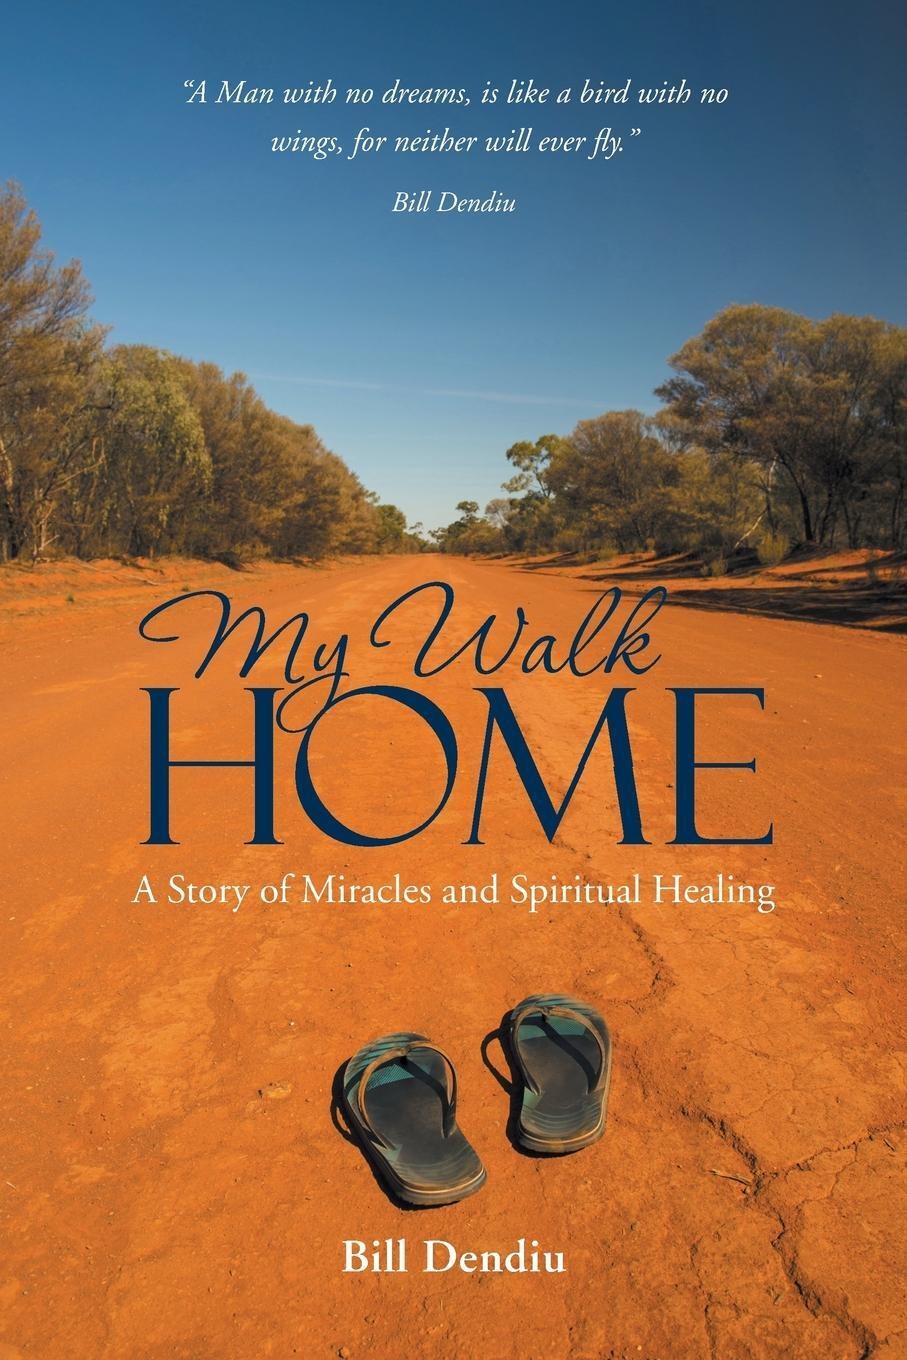 My Walk Home. A Story of Miracles and Spiritual Healing